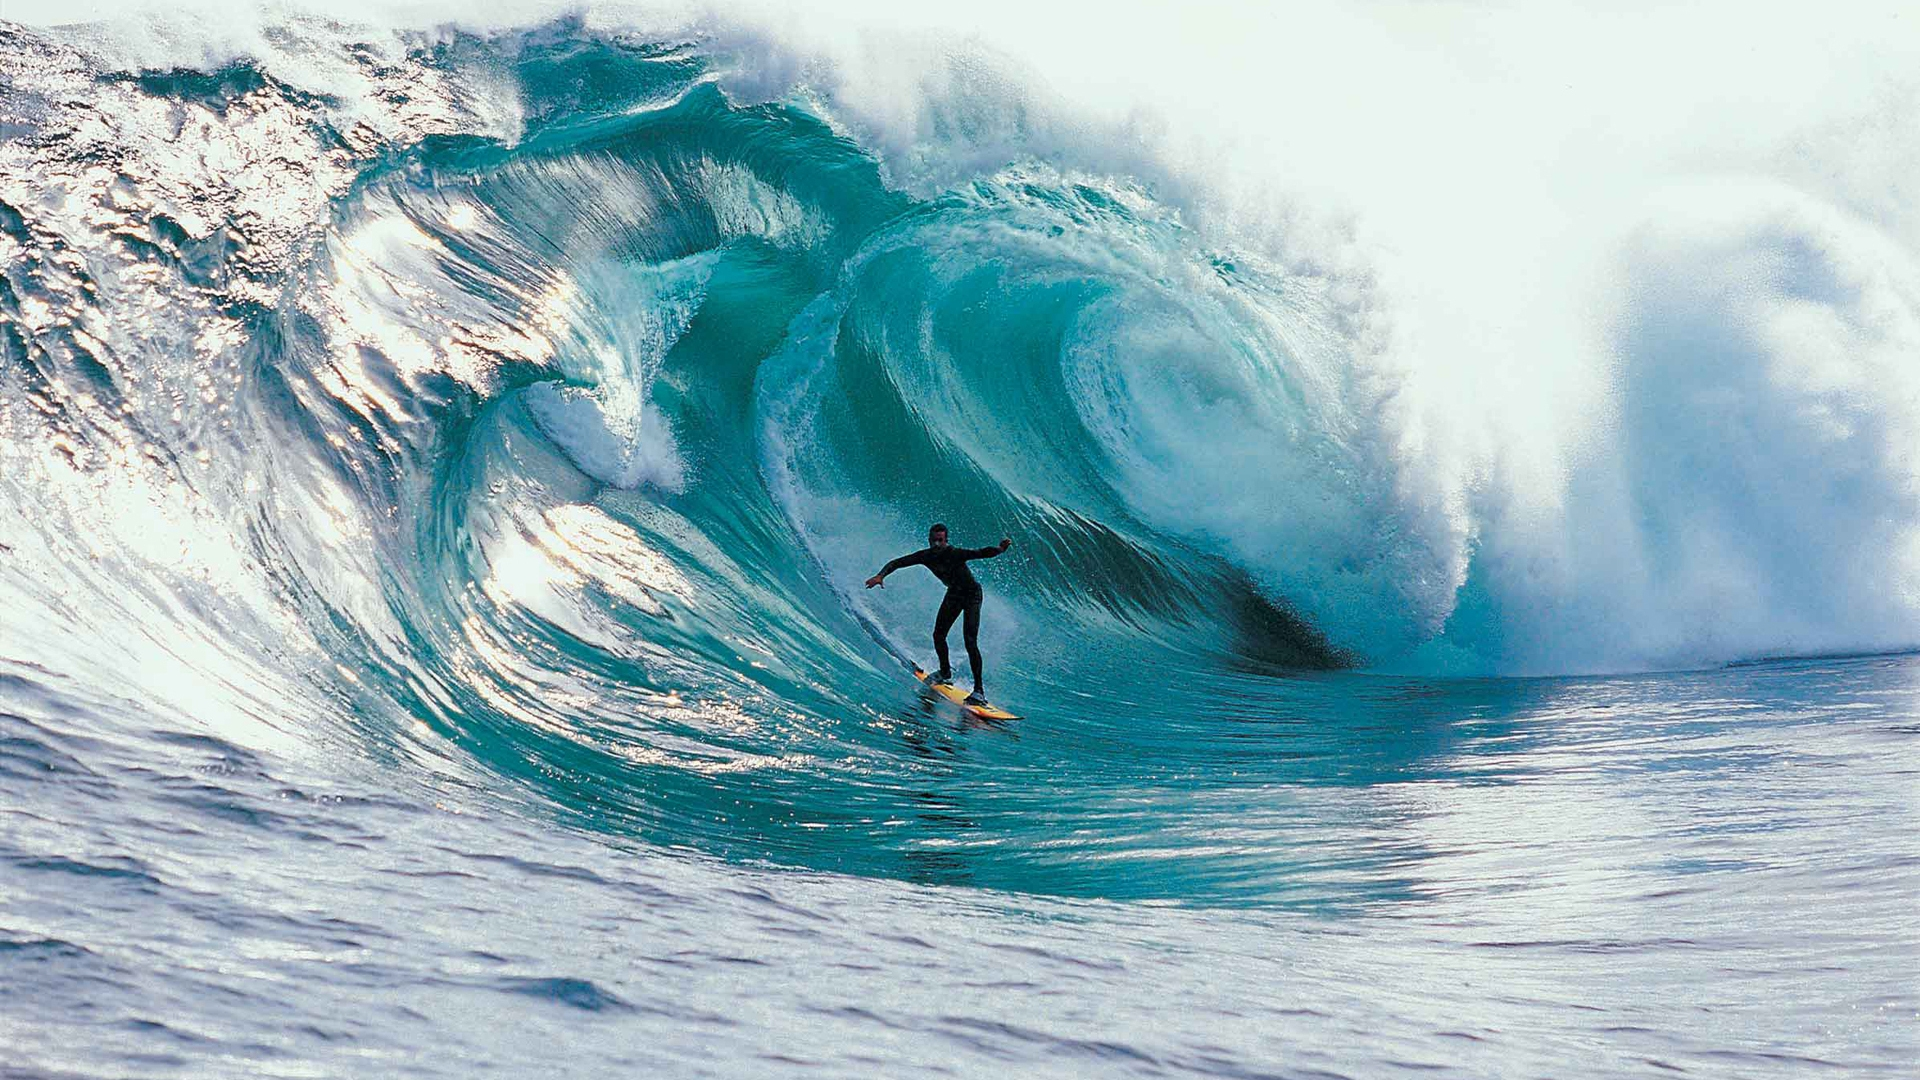 Extreme Ocean Surfing   High Definition Wallpapers   HD wallpapers 1920x1080